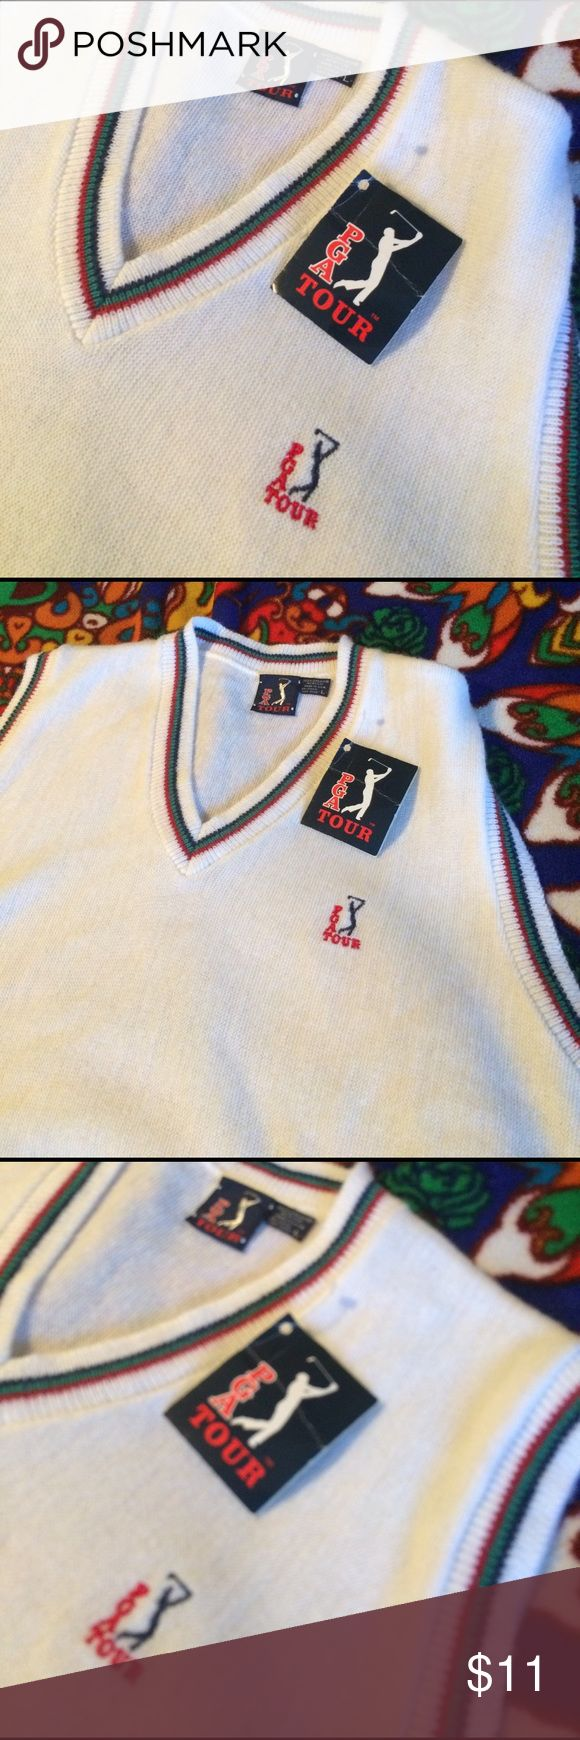 NWT PGA Tour golf sweater vest. Size L. NWT PGA Tour golf sweater vest. Size L.  White with Red, green and black trim. This item is NWT but the tag is old and wrinkly. It has 2 small pulls on front (see pics) and is discounted. PGA Tour Jackets & Coats Vests